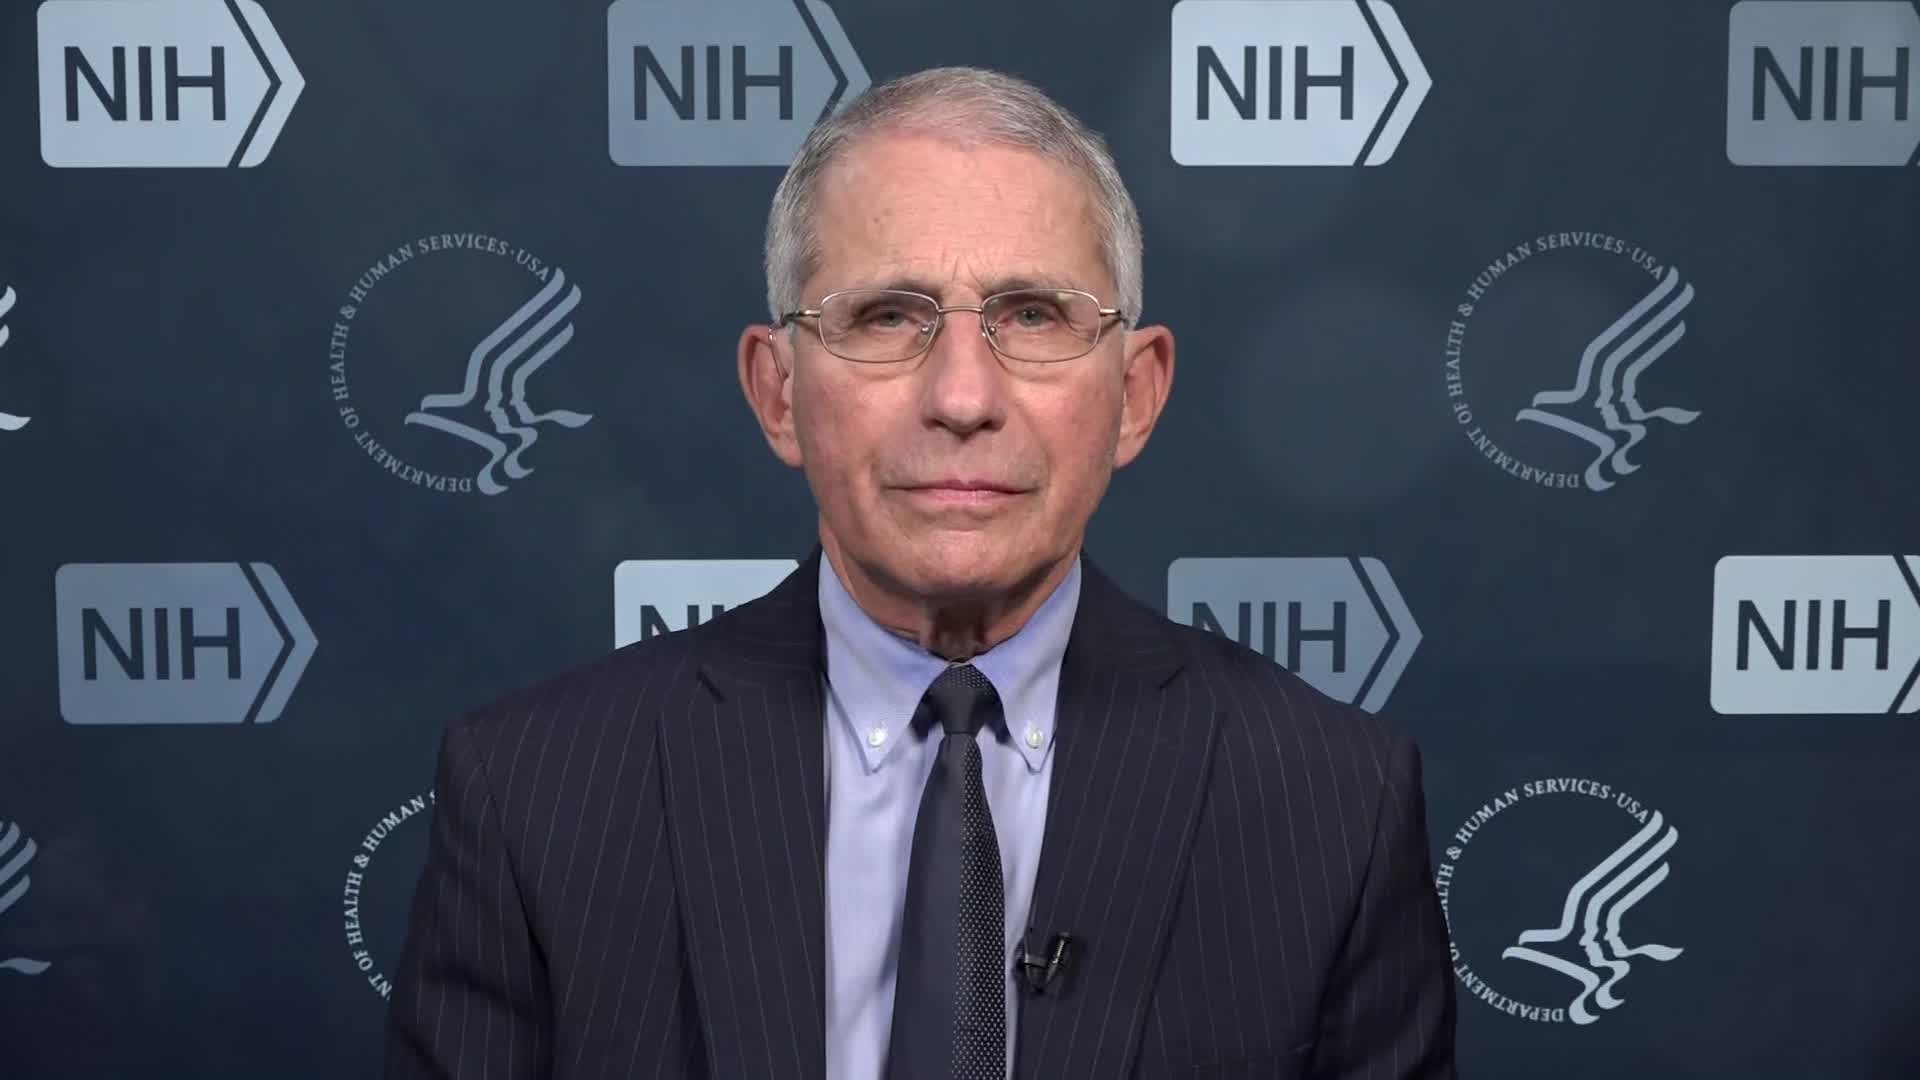 Fauci says findings on a potential coronavirus vaccine are expected by early December but widespread availability will come later